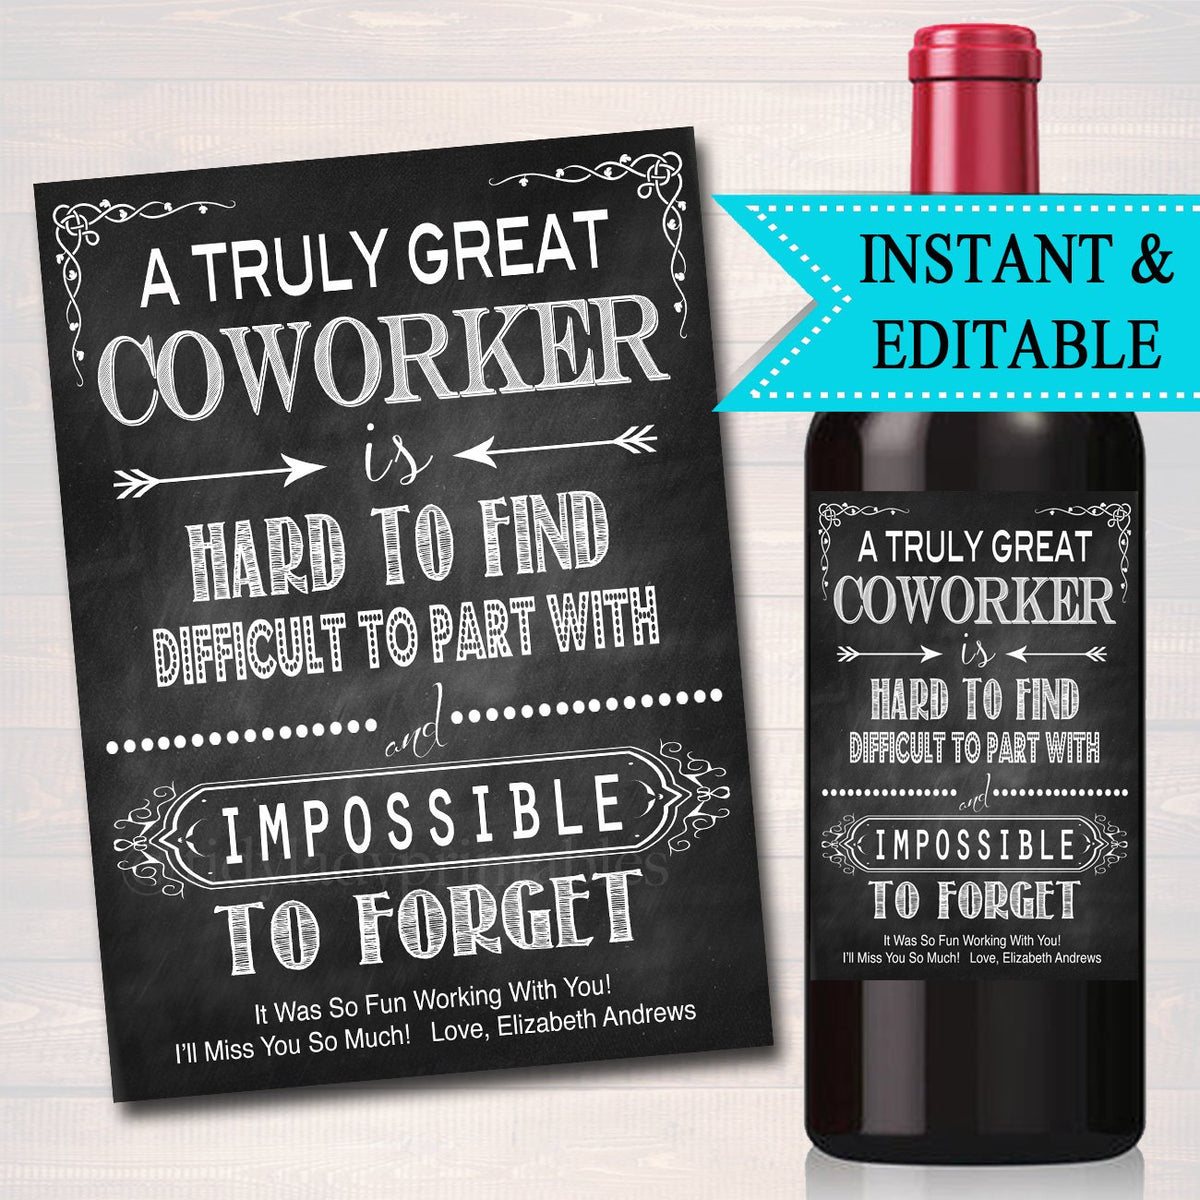 Wedding Gift Ideas For Coworker: Editable Coworker Gift A Truly Great Coworker Is Hard To